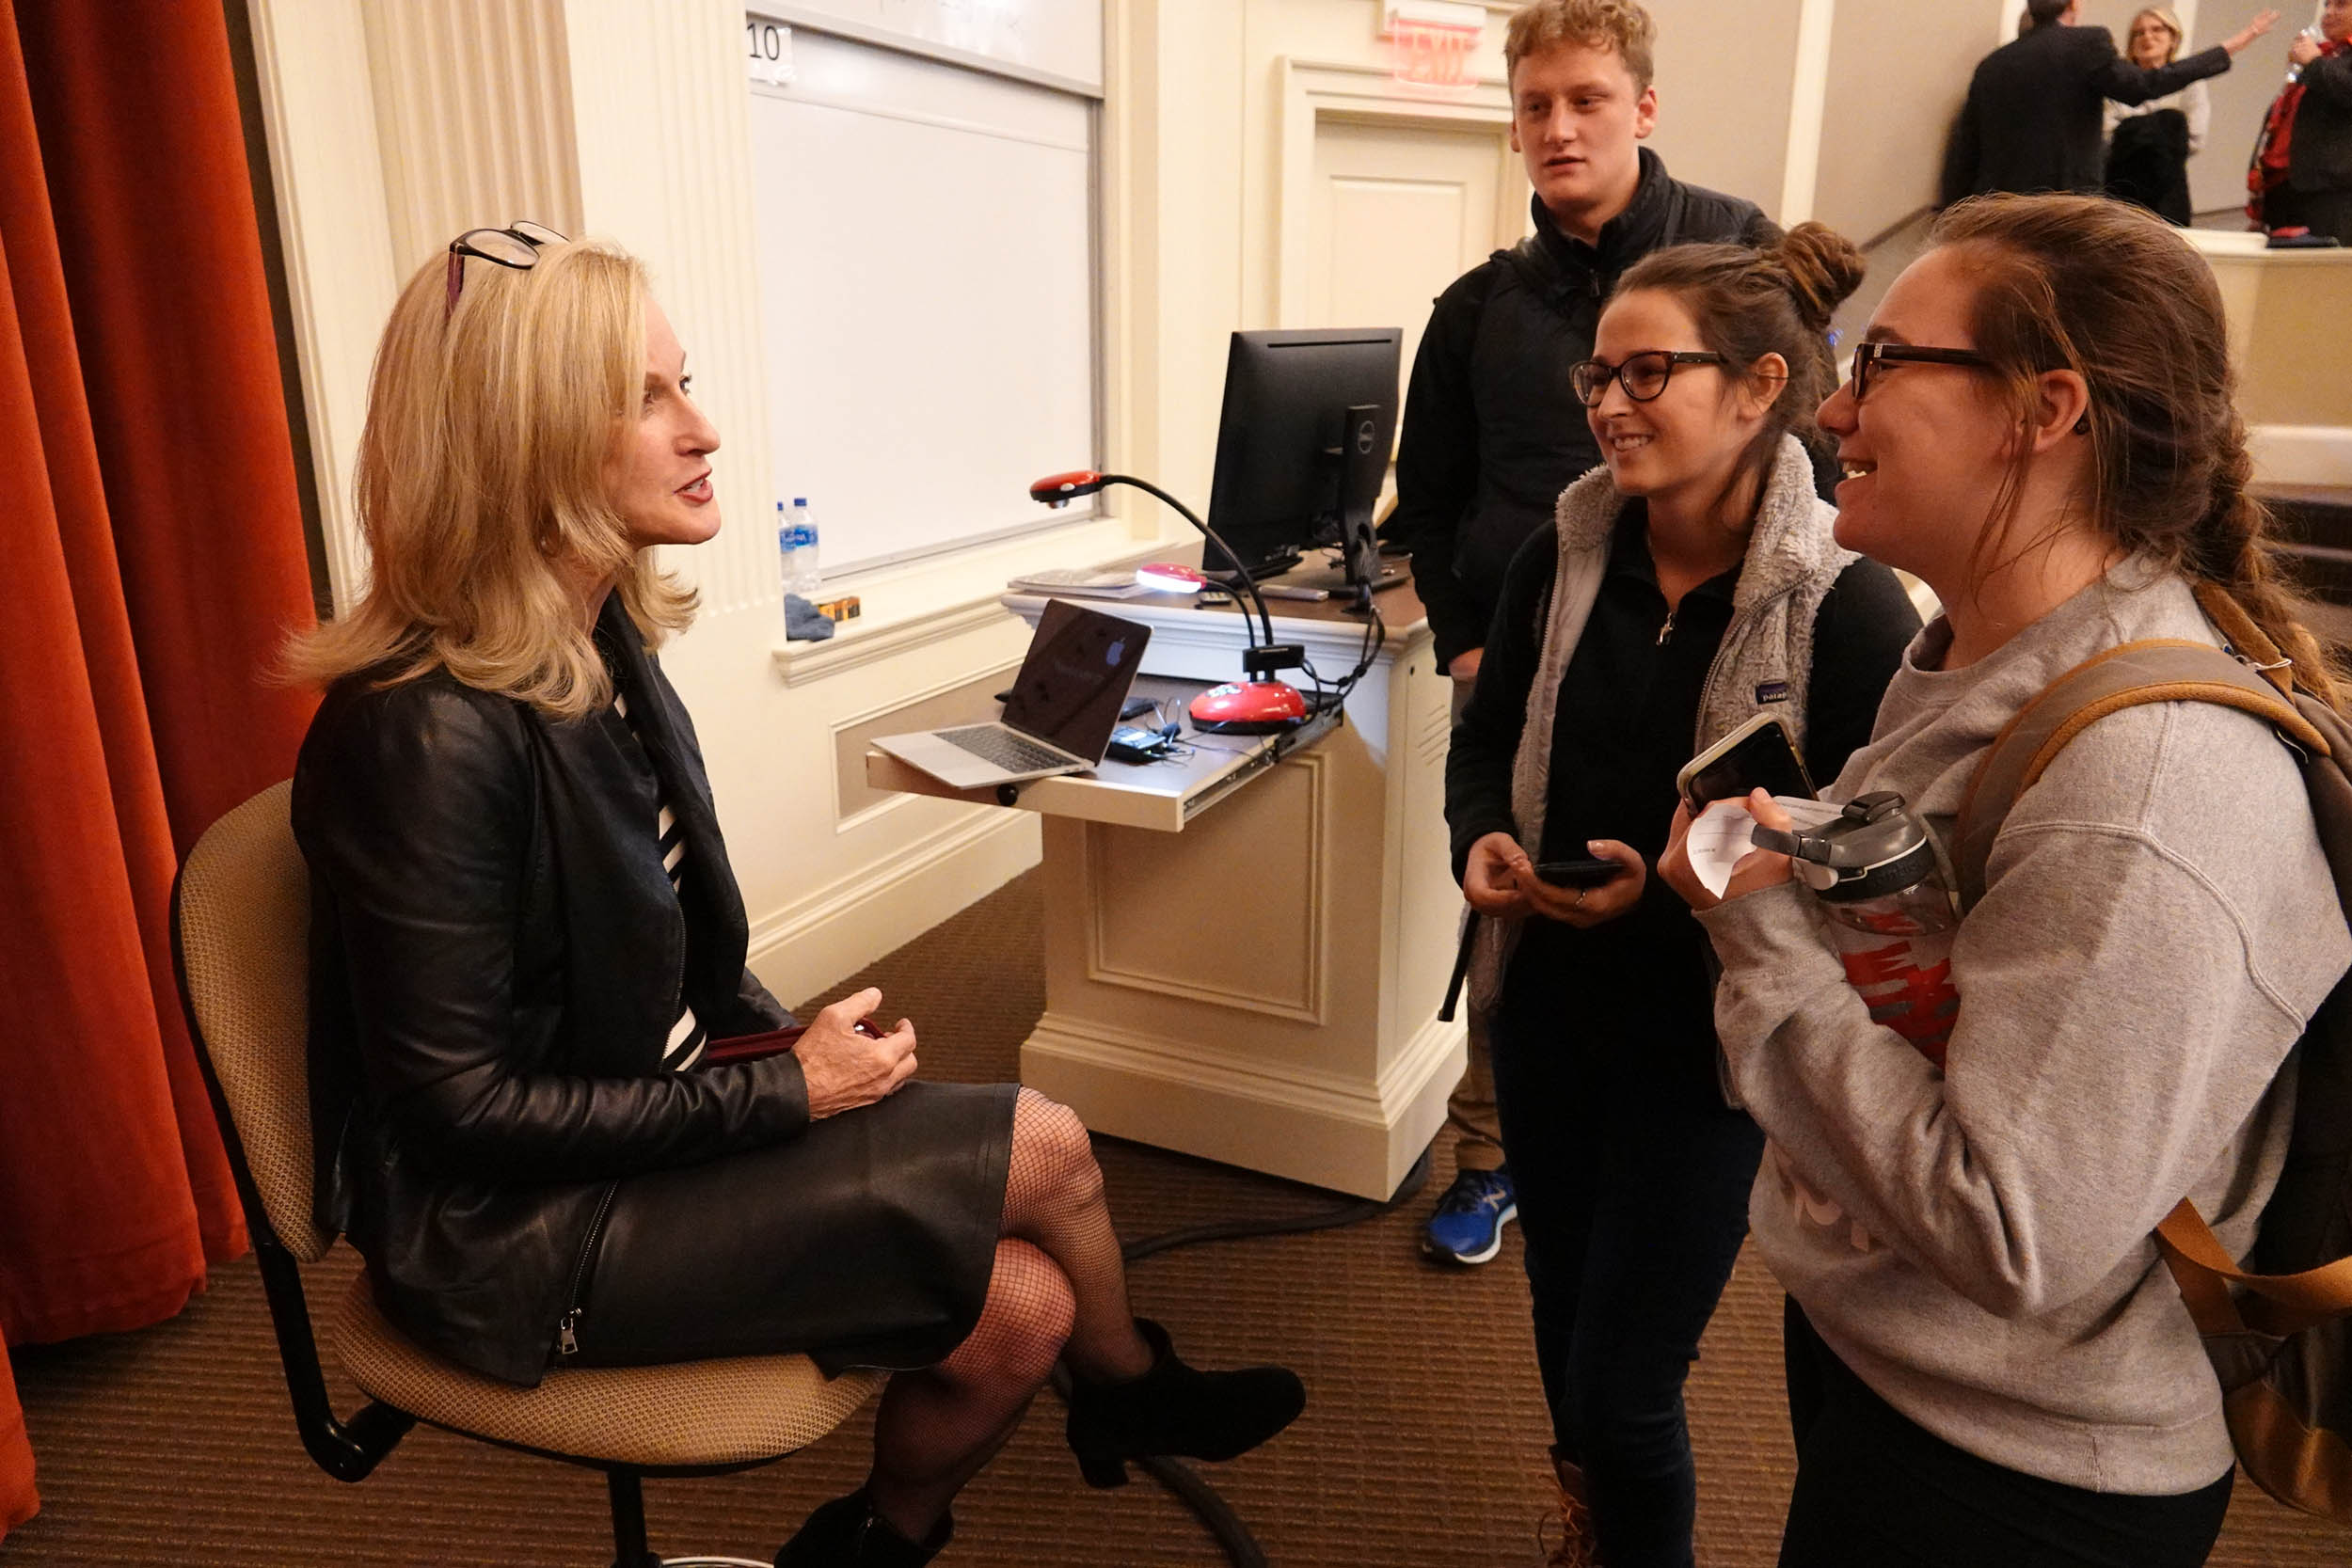 Wendy Lea talks with students after the event